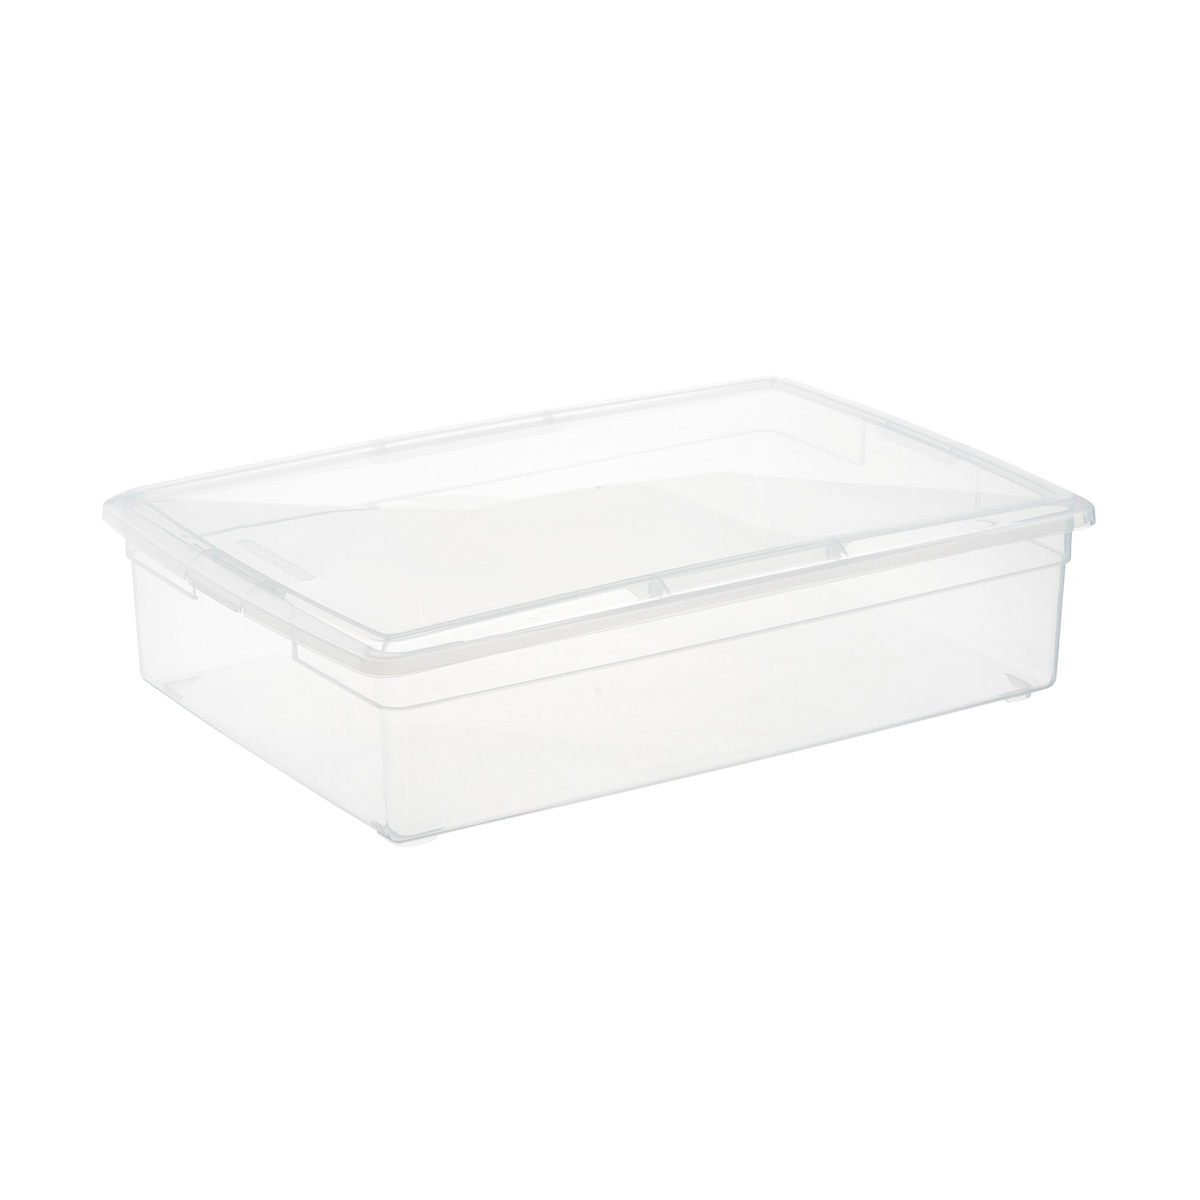 Attrayant Clear Plastic Storage Boxes   Our Clear Storage Boxes | The Container Store